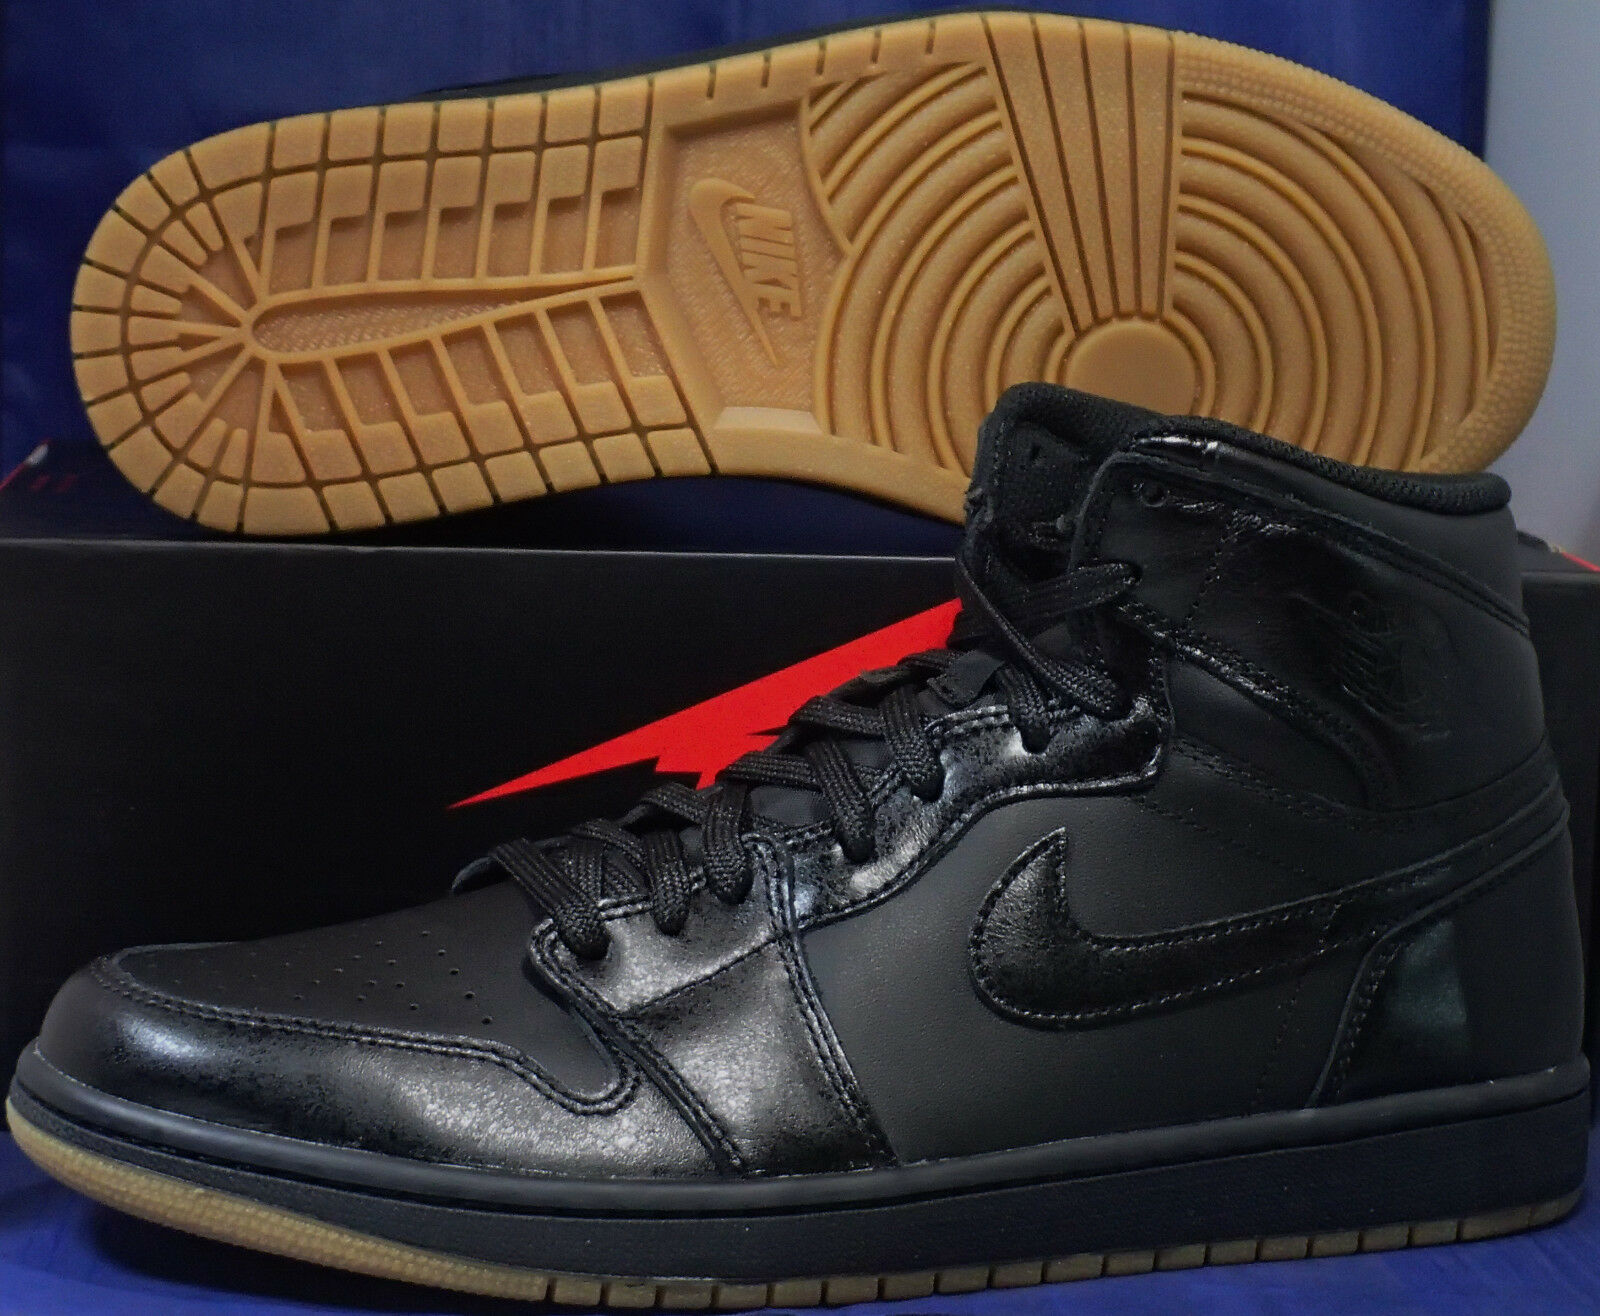 innovative design 3a30a 25b64 discount air jordan 1 pinnacle black 598cf 8903b  new zealand nike air  jordan 1 brown ebay 40dad e4896